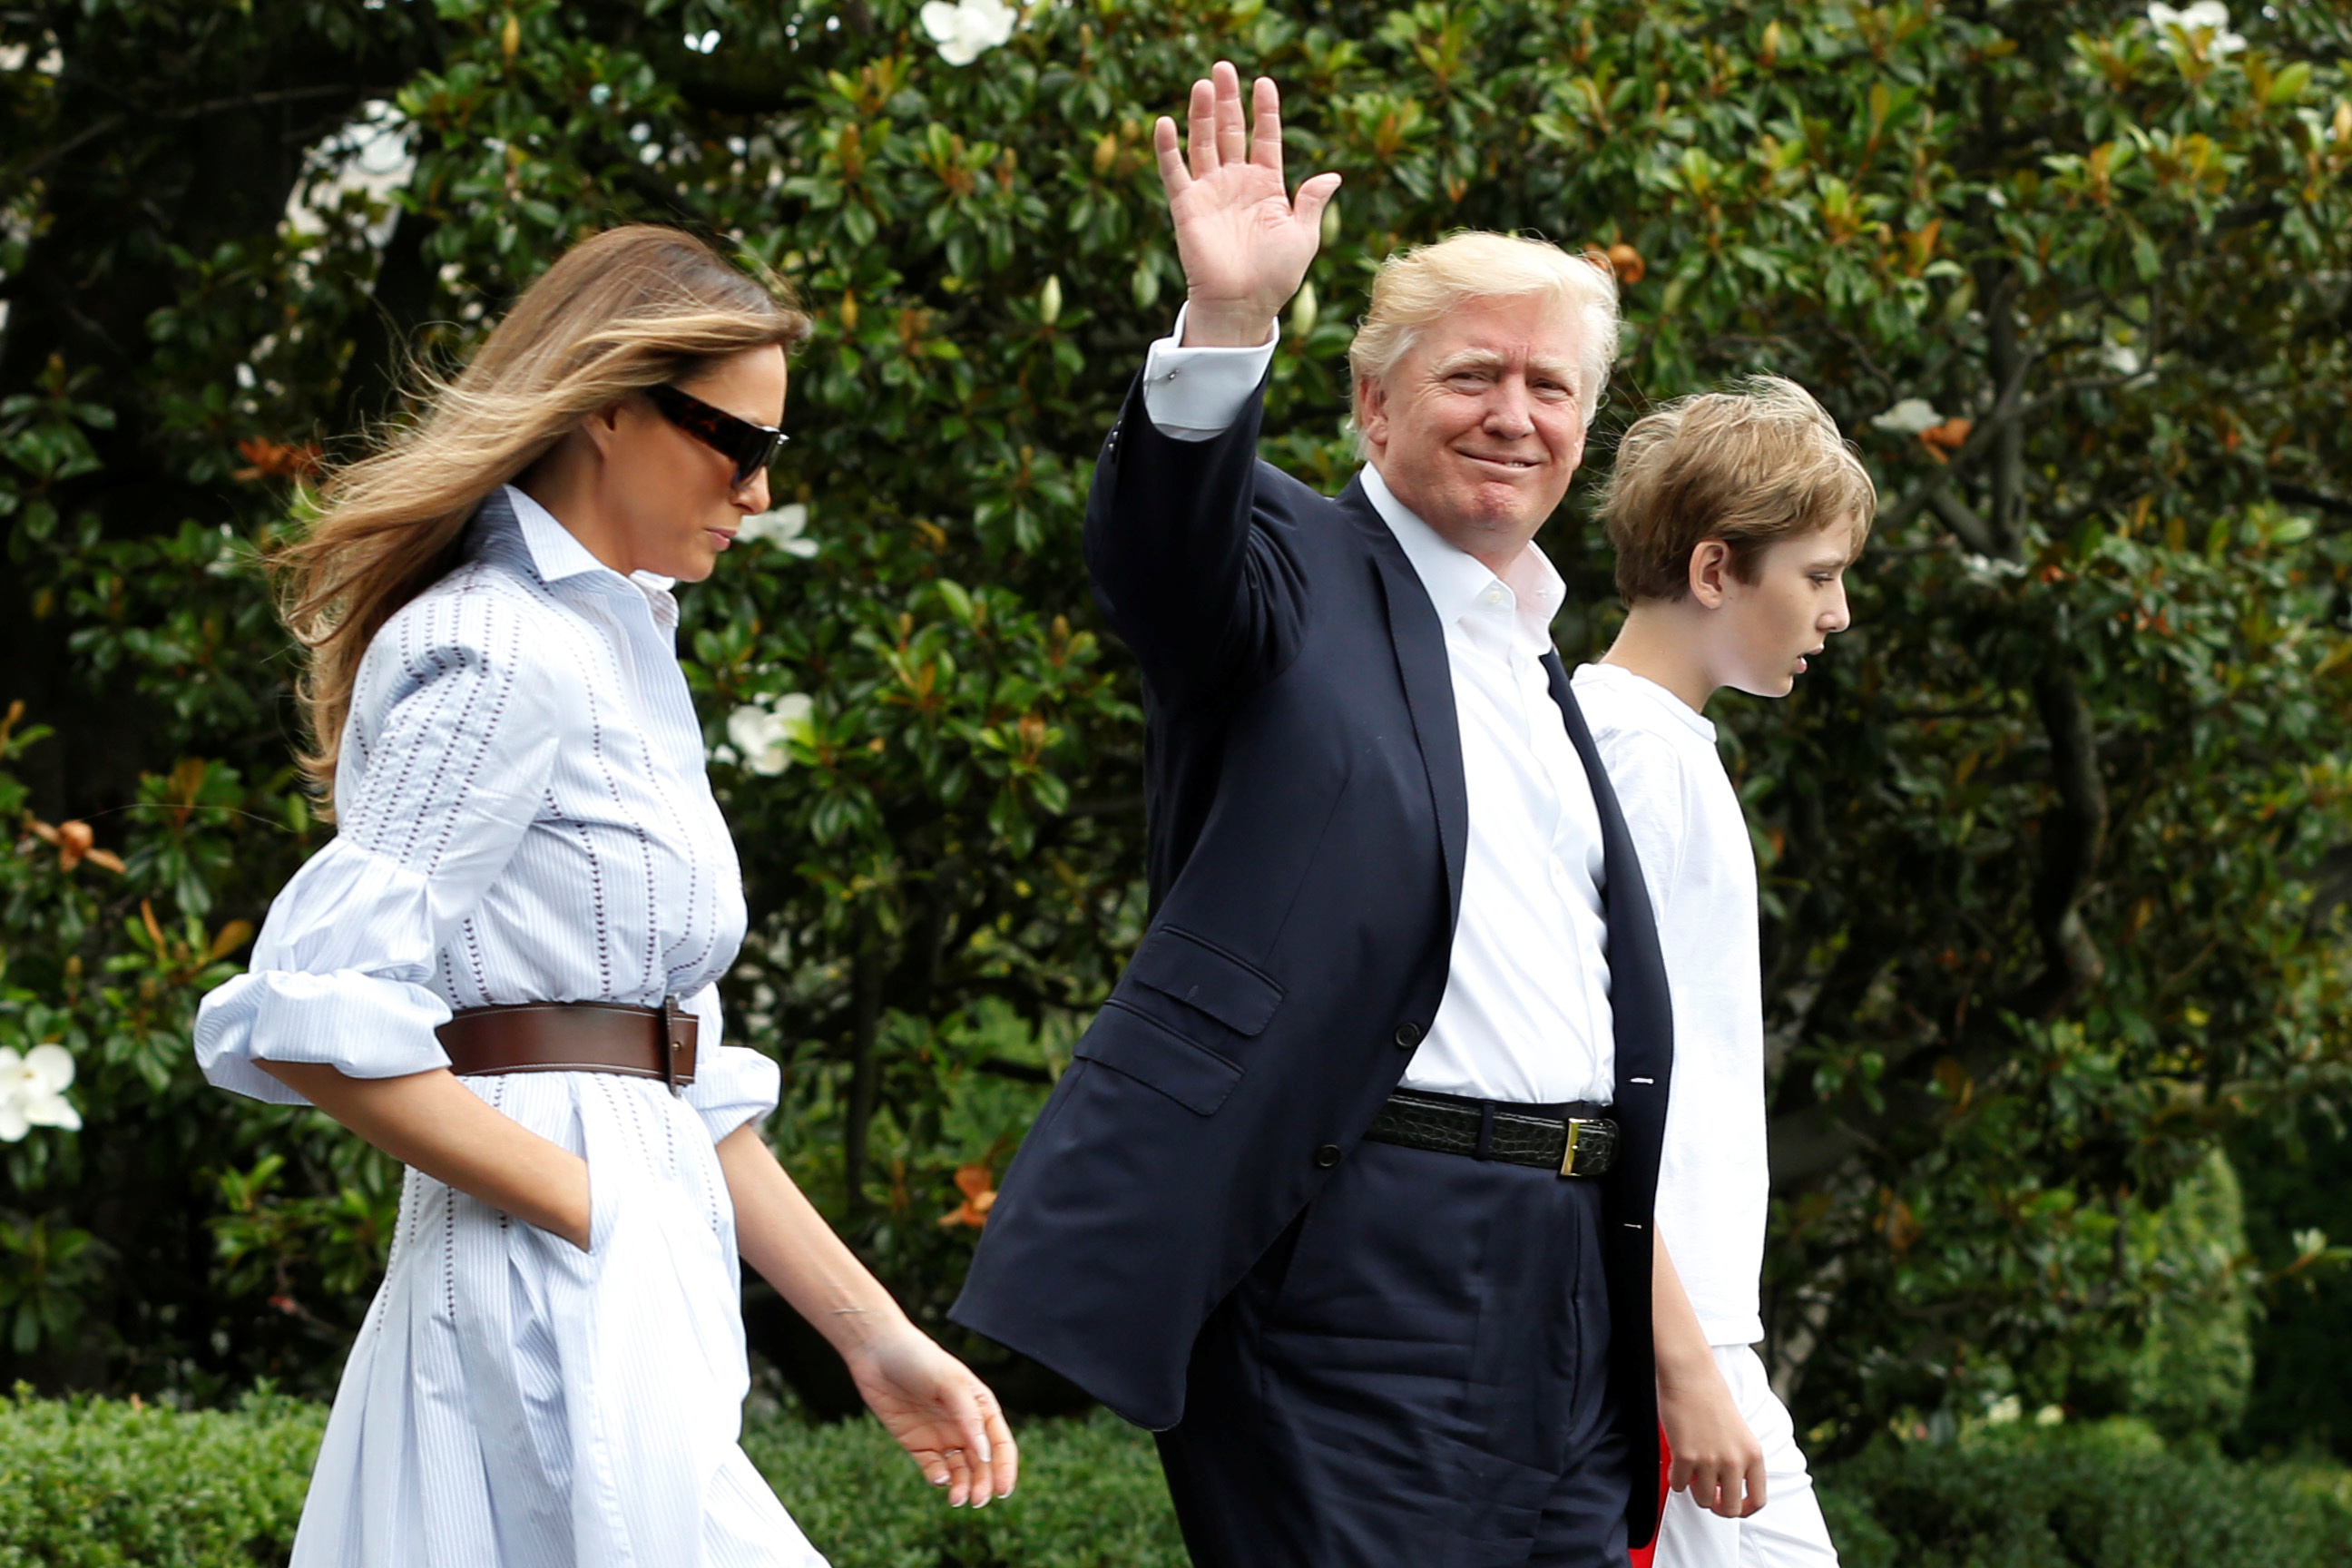 US President Trump with first lady Melania and their son Barron walk out from the White House in Washington